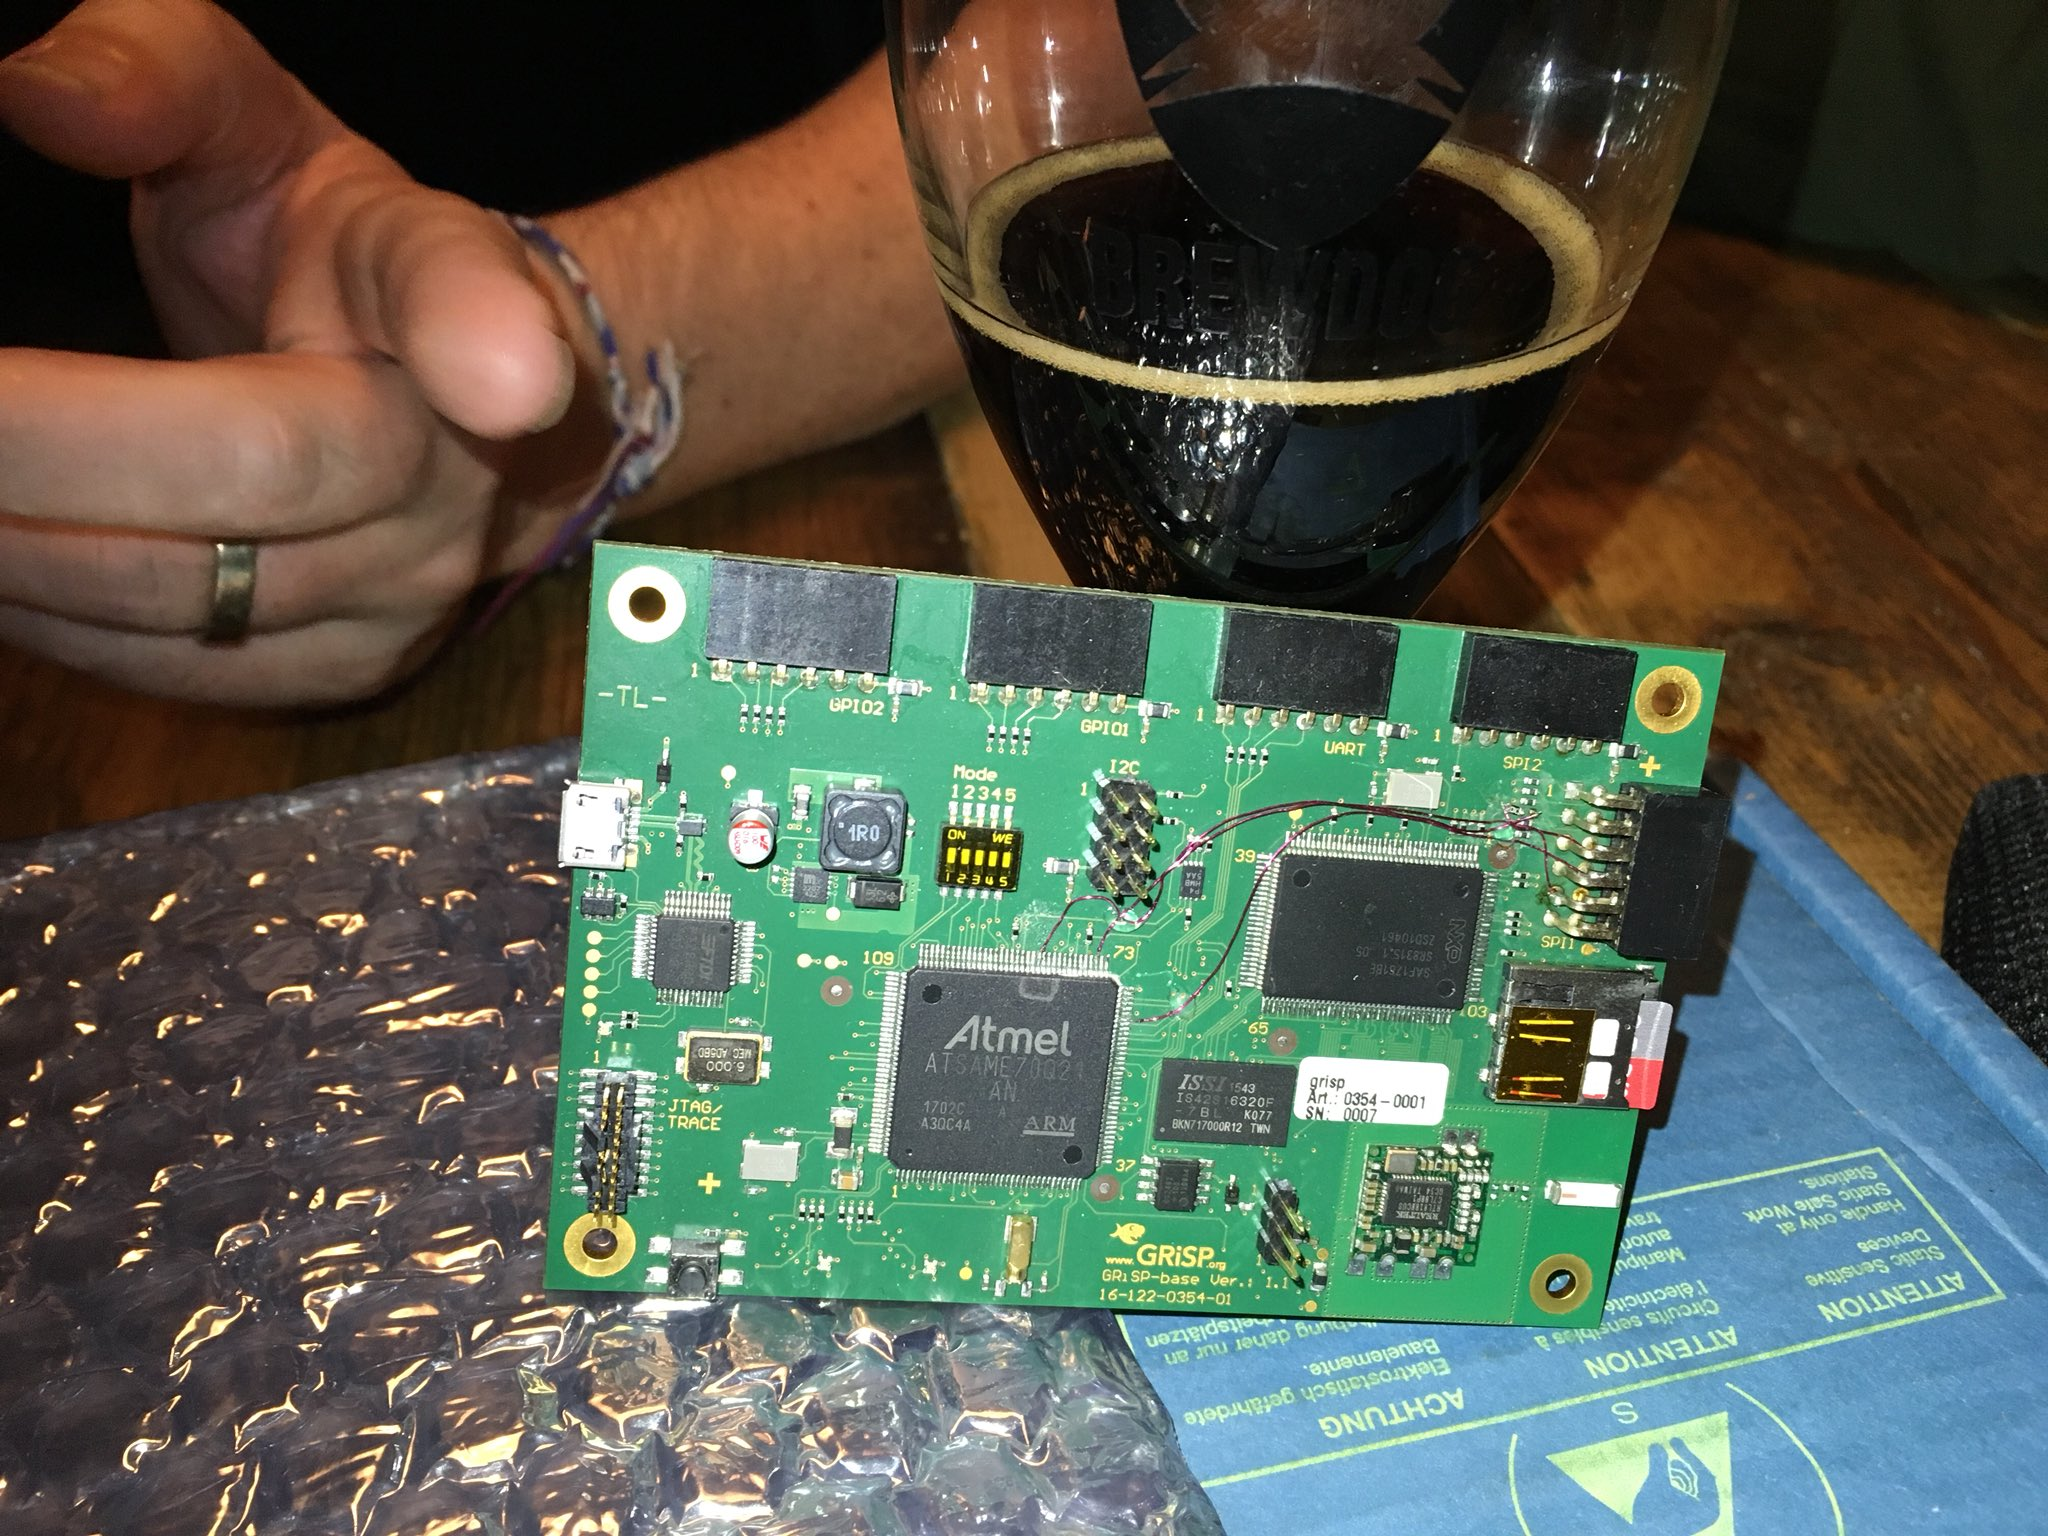 A GRiSP board, propped up against a glass of stout, while someone on the other side of the pub table gestures excitedly.